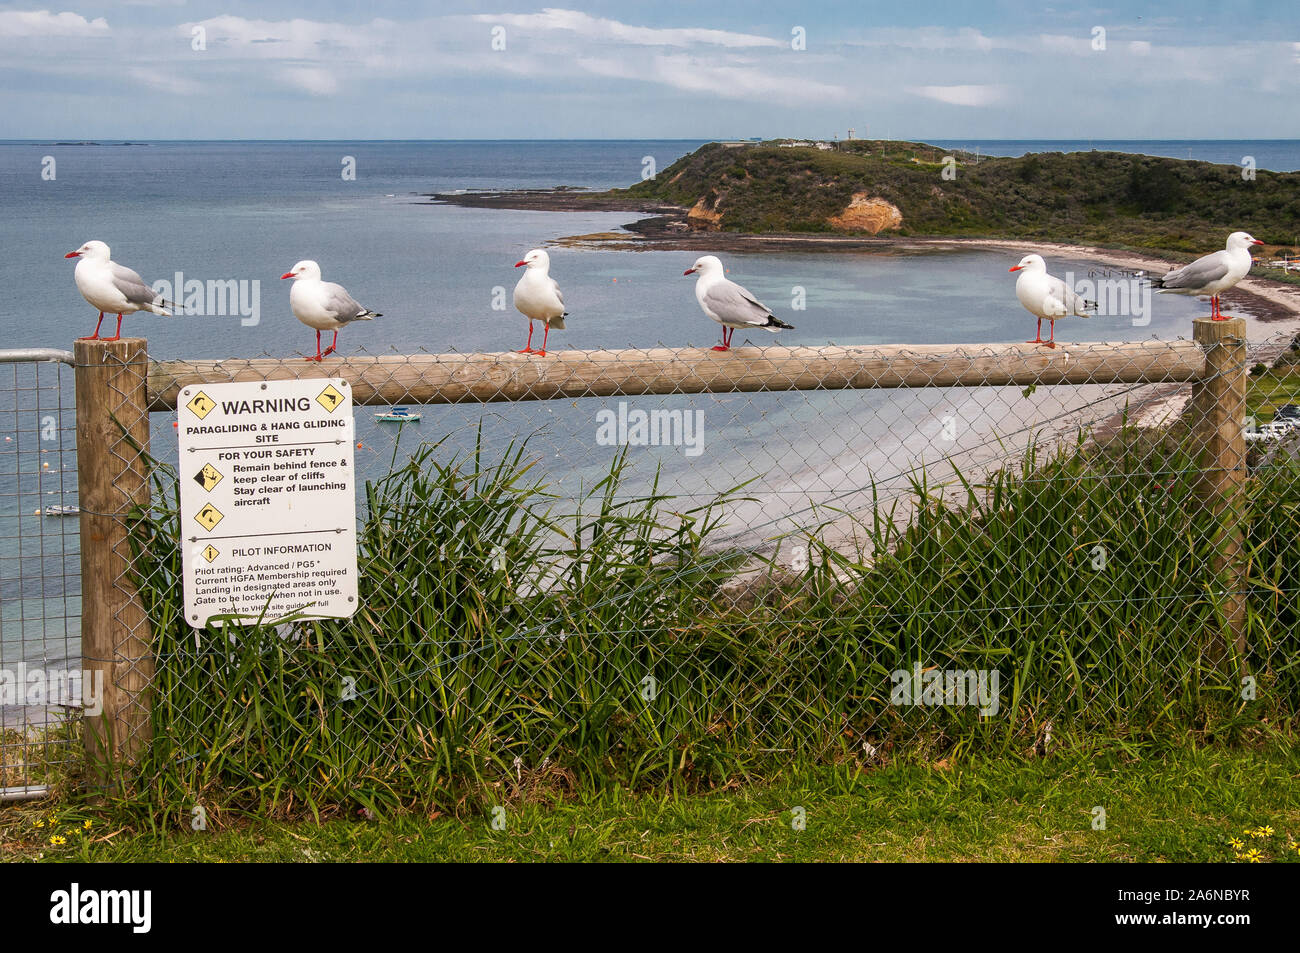 Nonchalant seagulls disregard safety warnings at a clifftop hang gliding and paragliding site on Western Port Bay, outside Melbourne, Australia Stock Photo